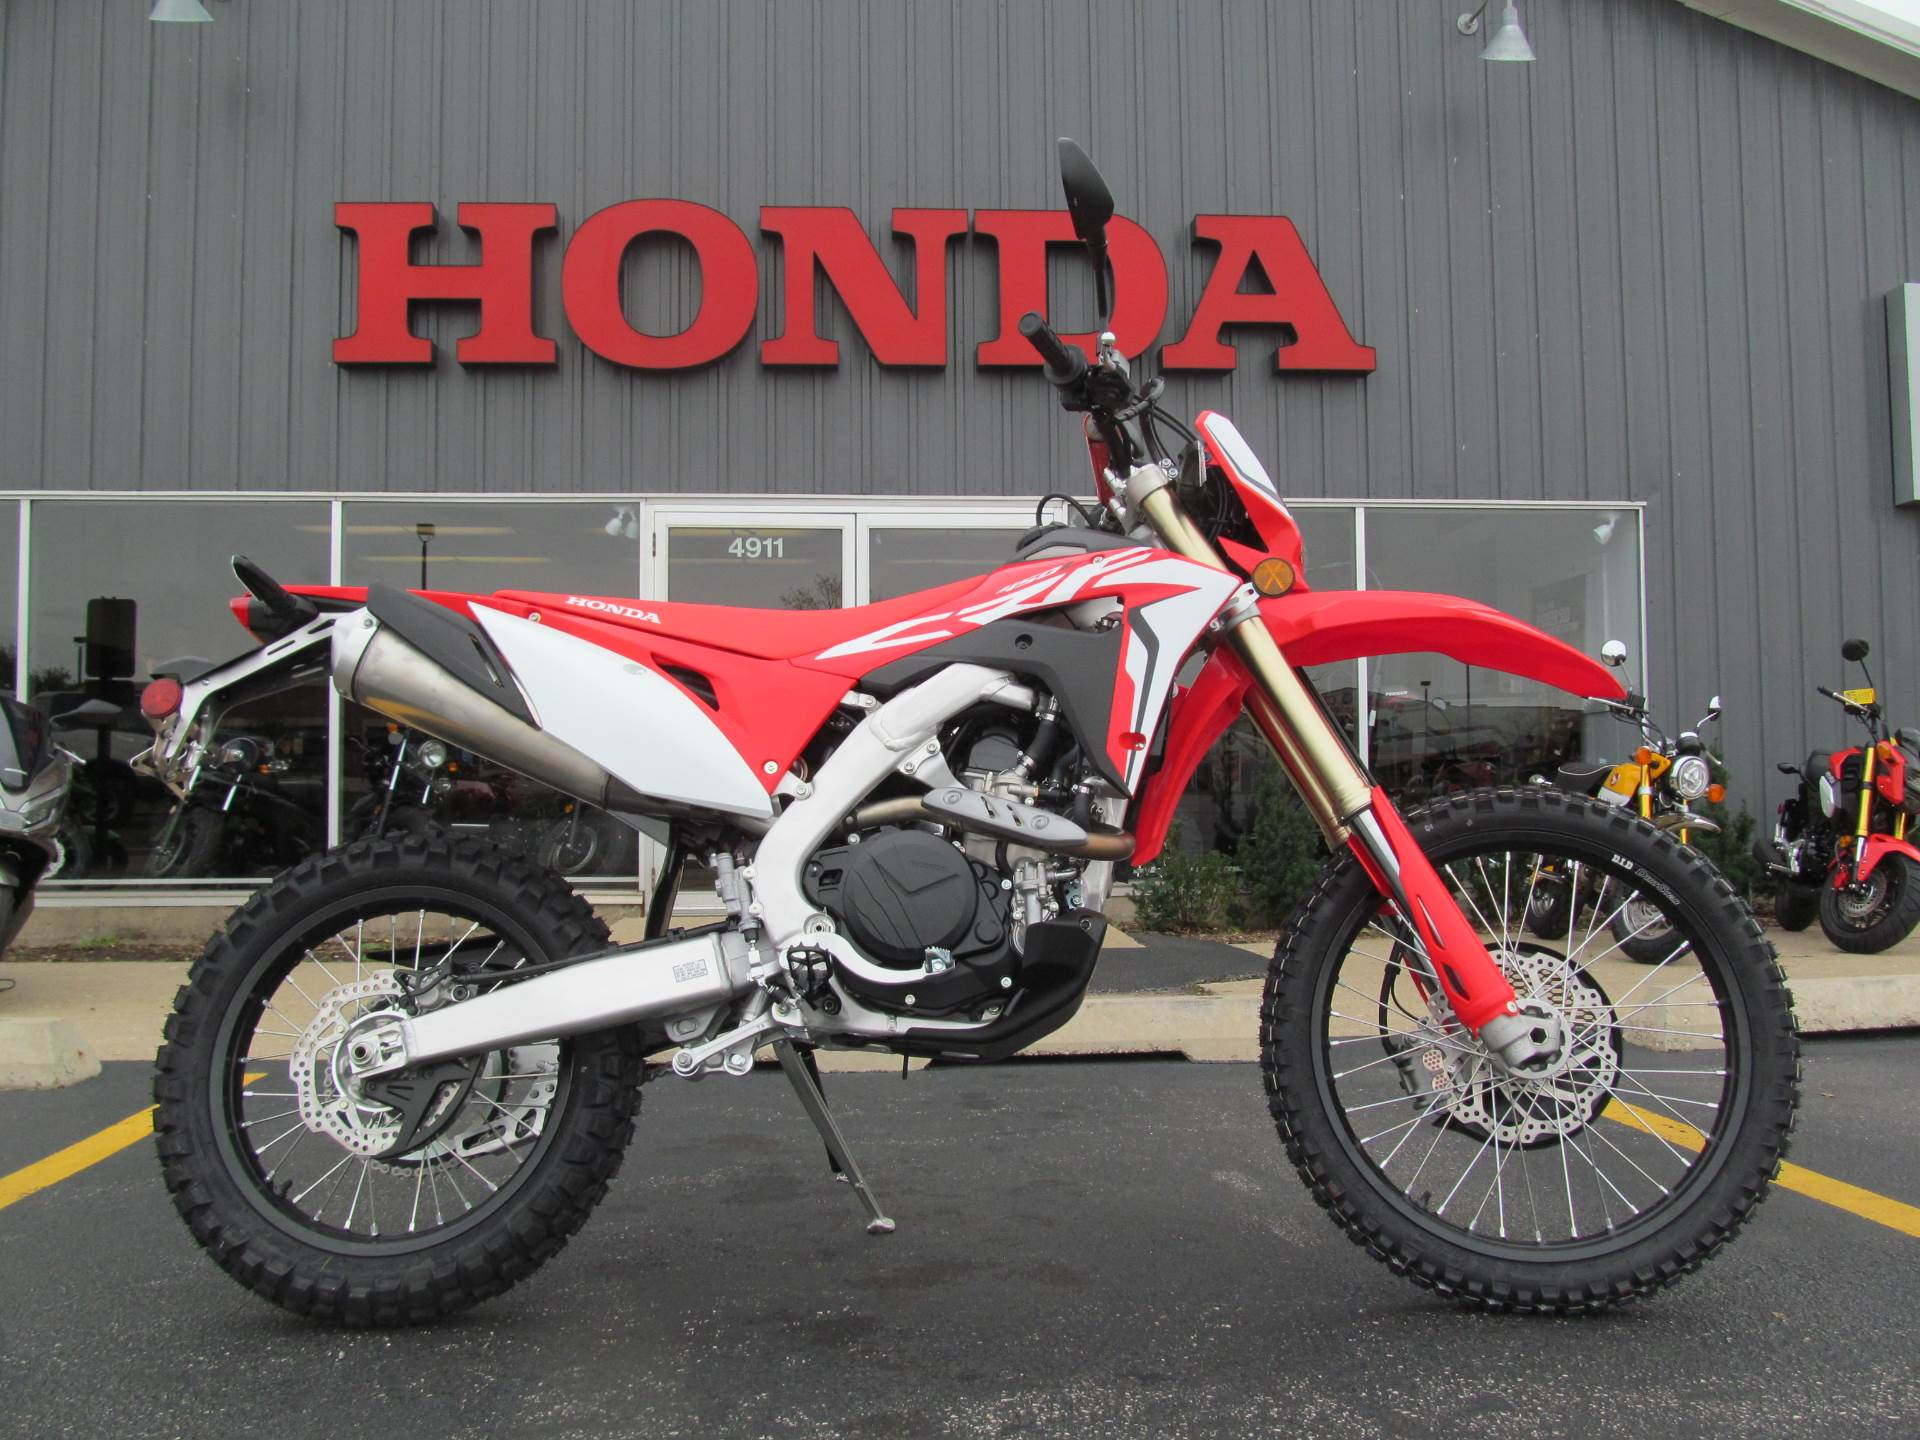 New 2019 Honda Crf450l Motorcycles In Crystal Lake Il Stock